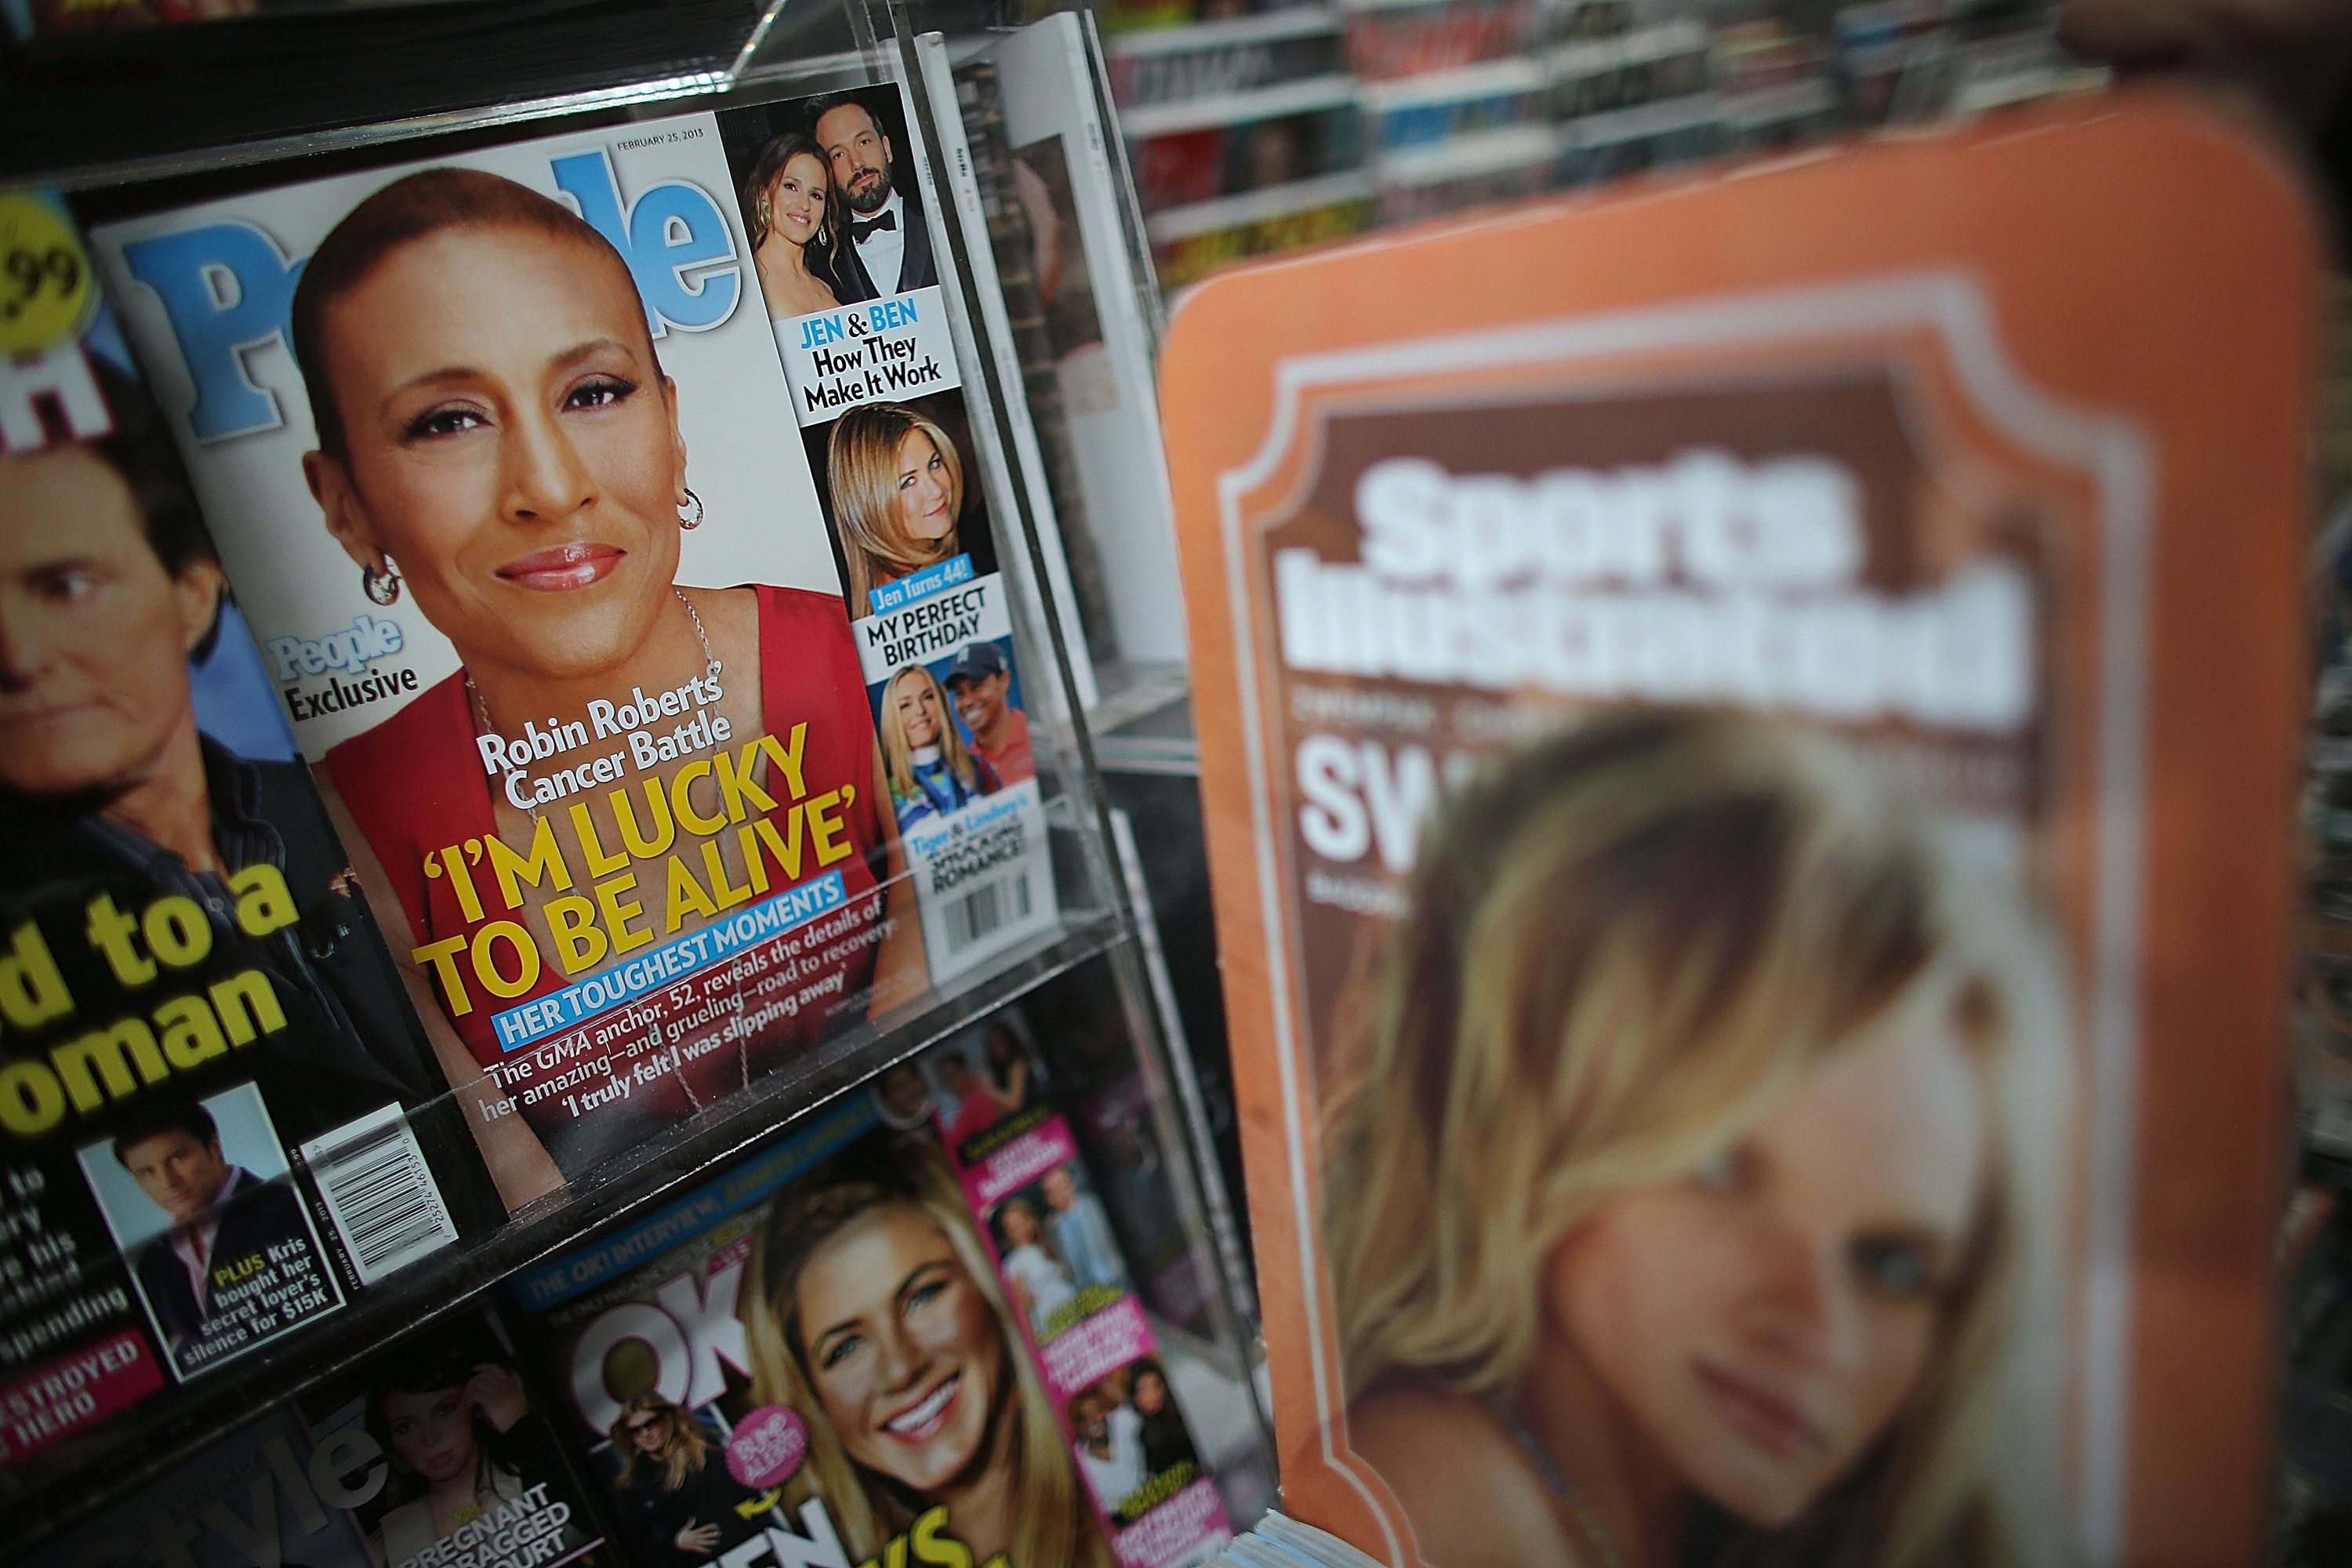 NEW YORK, NY - FEBRUARY 13:  Issues of People magazine (L) are displayed next to a Sports Illlustrated advertisement at a newsstand in Manhattan on February 13, 2013 in New York City. Time Warner Inc. is reportedly in talks to sell most of its magazine group, including People, InStyle and Entertainment Weekly, to the Meredith Corporation. Time Warner would reportedly retain control of flagship titles Time, Sports Illustrated and Fortune.  (Photo by Mario Tama/Getty Images)